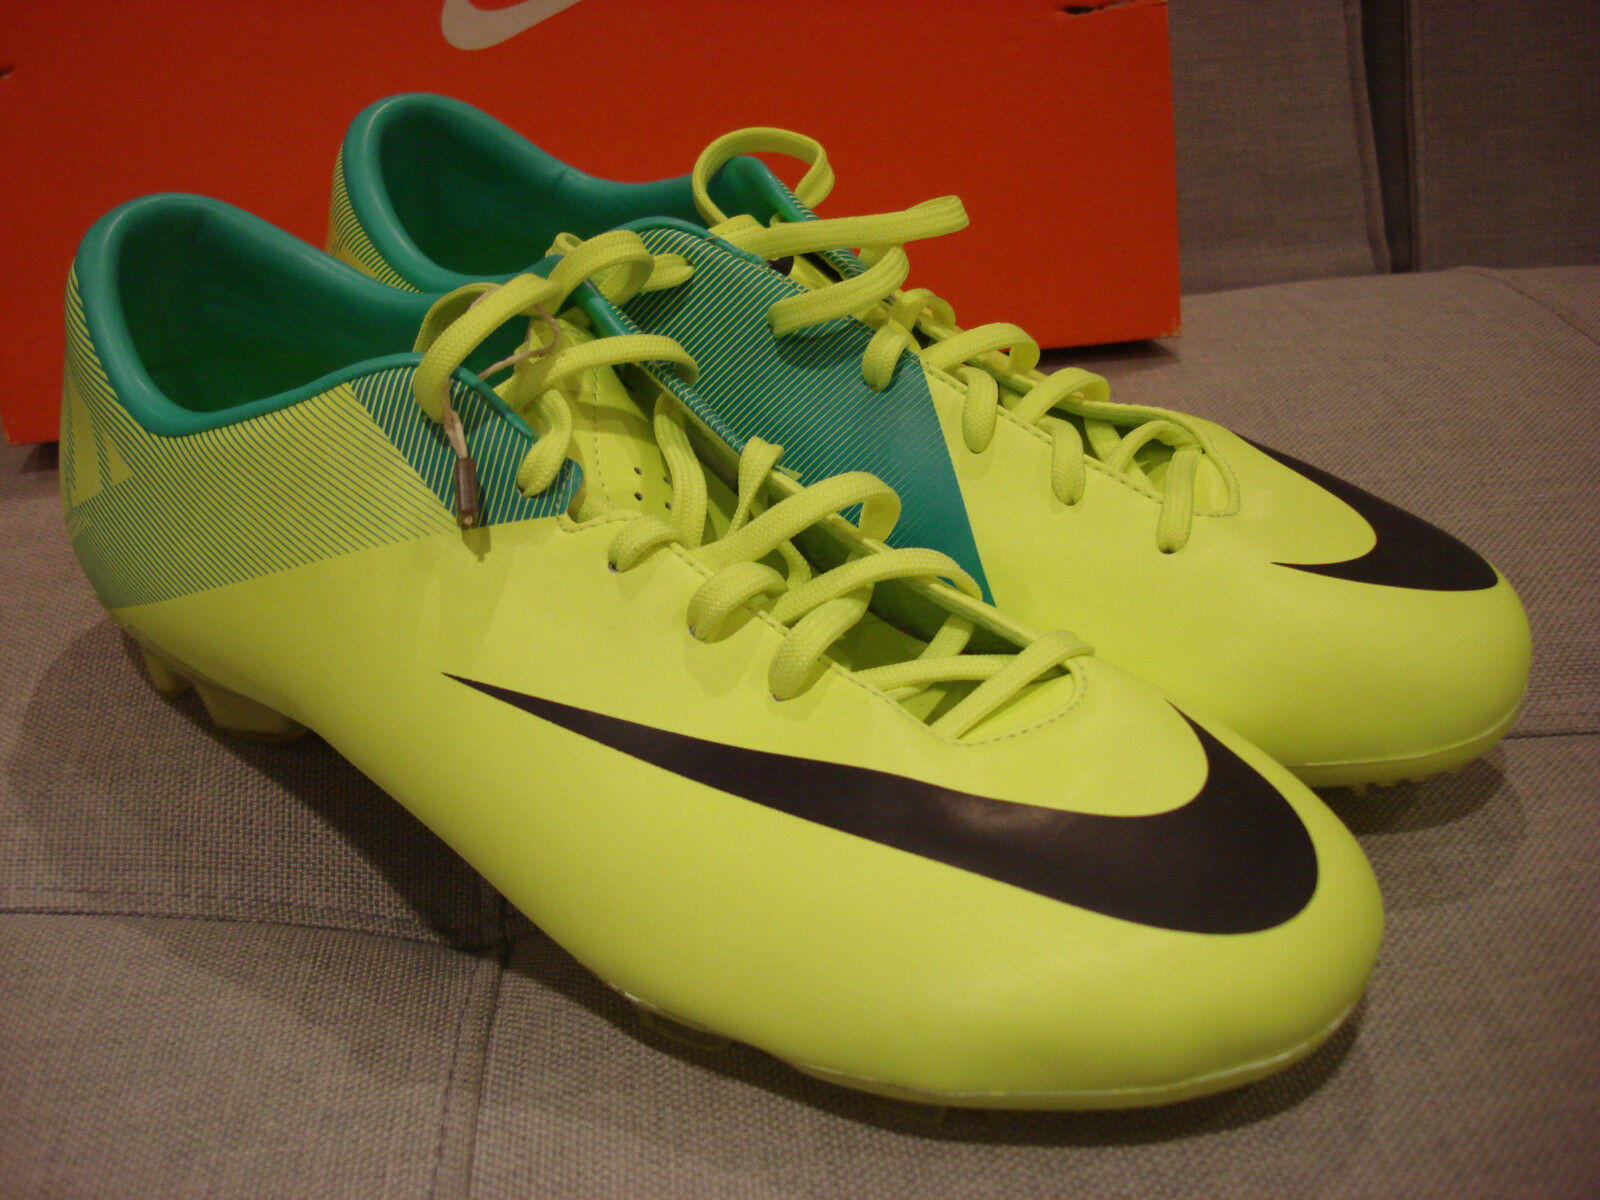 NIKE MERCURIAL MIRACLE II FG SOCCER FOOTBALL SIZE 11 VOLT SHOES - BRAND NEW